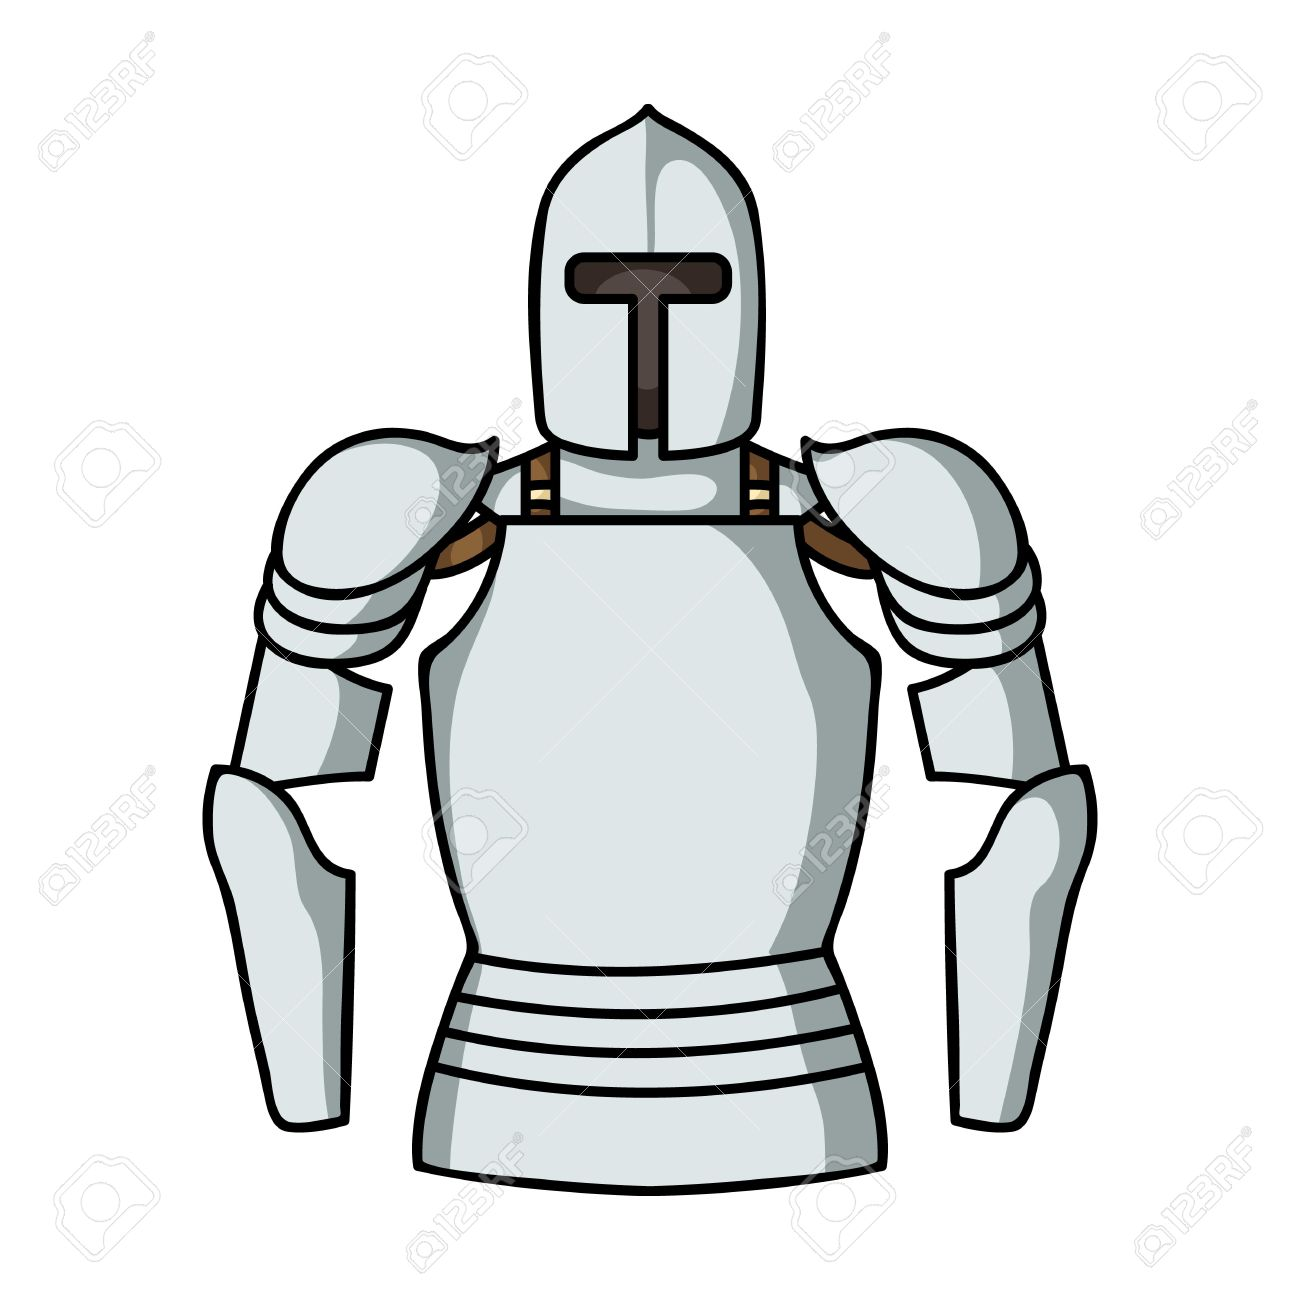 Plate armor icon in cartoon style isolated on white background